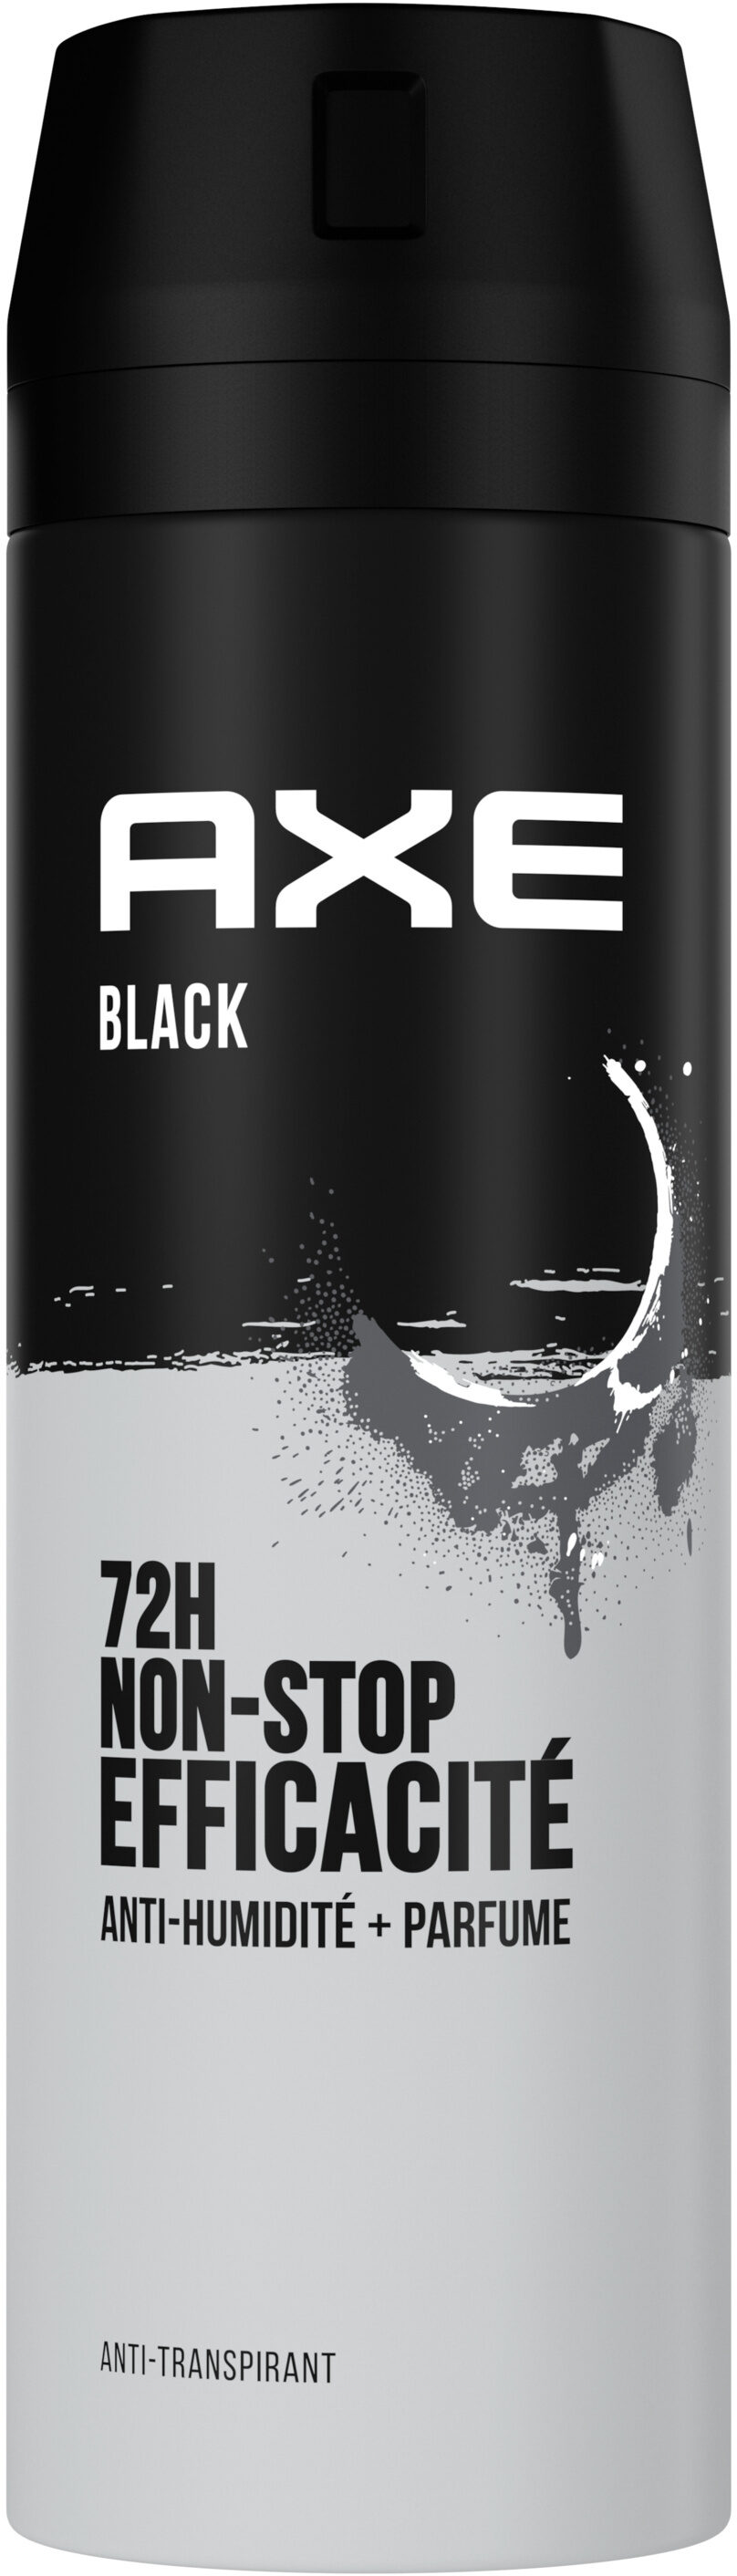 AXE Anti-Transpirant Homme Black 72h Anti-Humidité - Product - fr